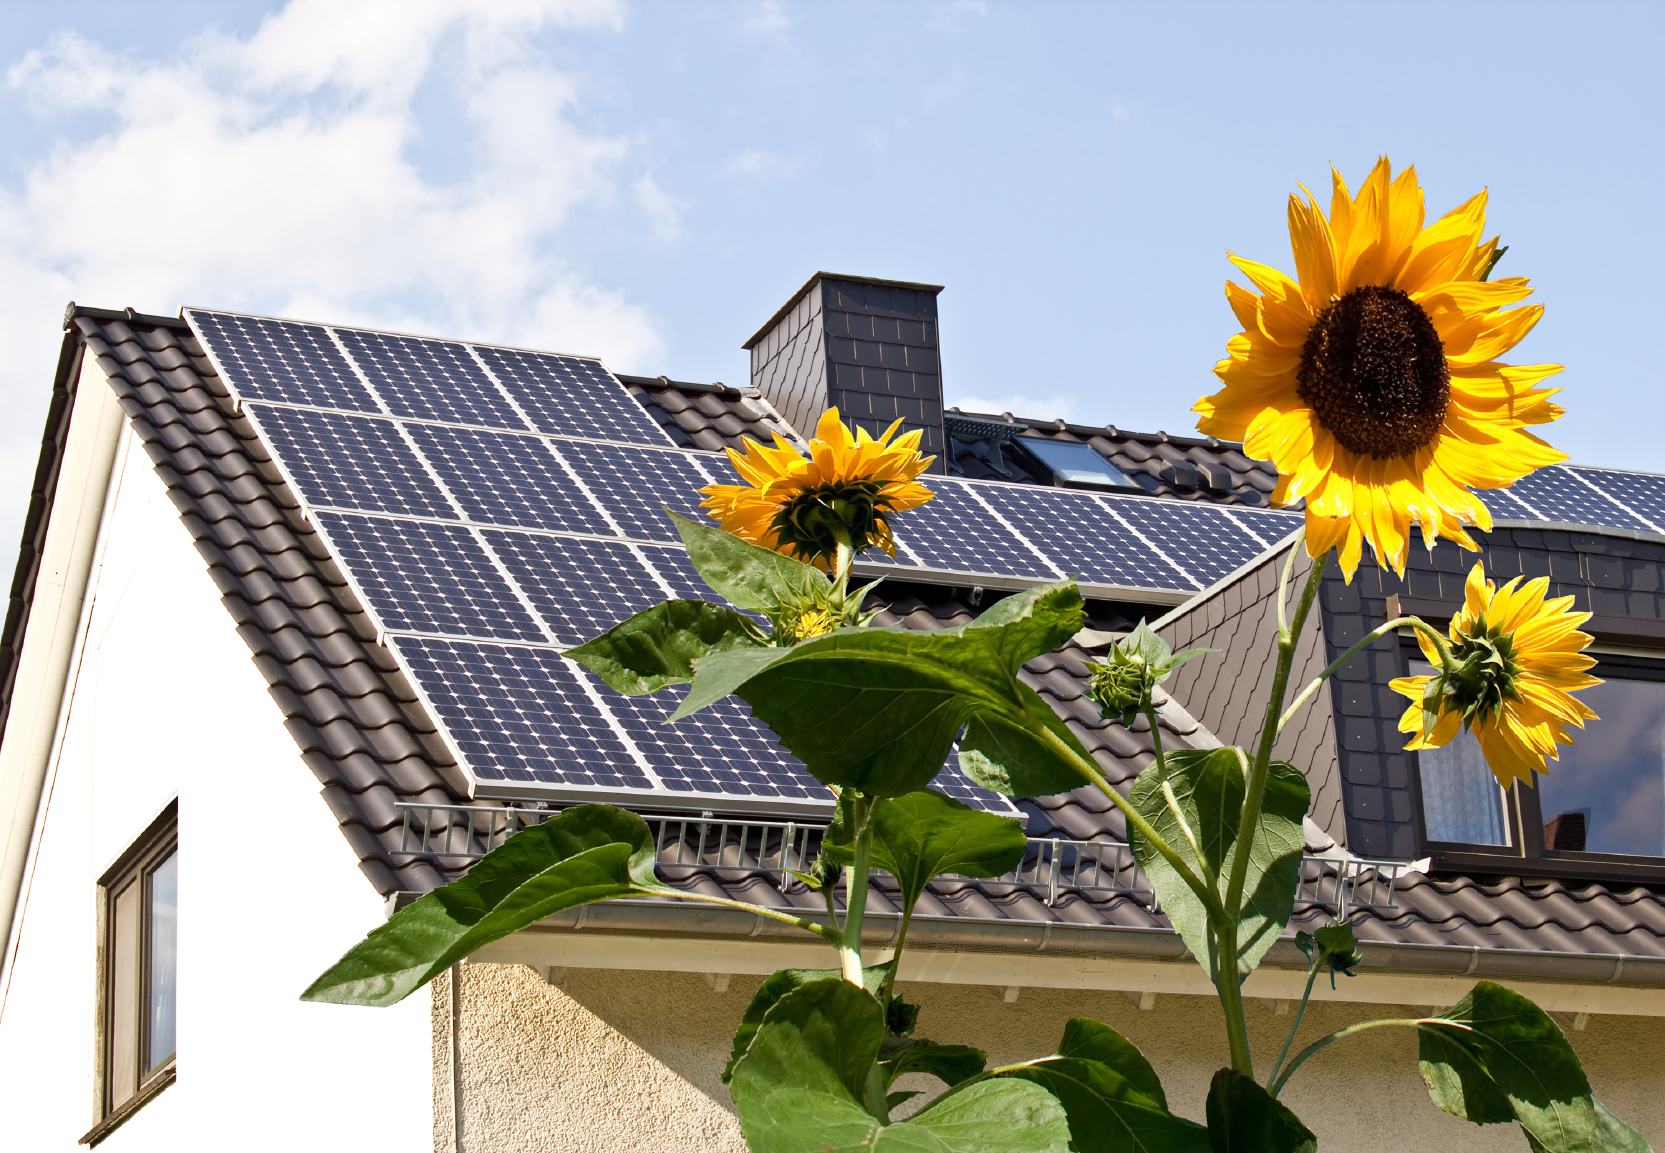 house with solar panels on roof and sunflowers in forefront